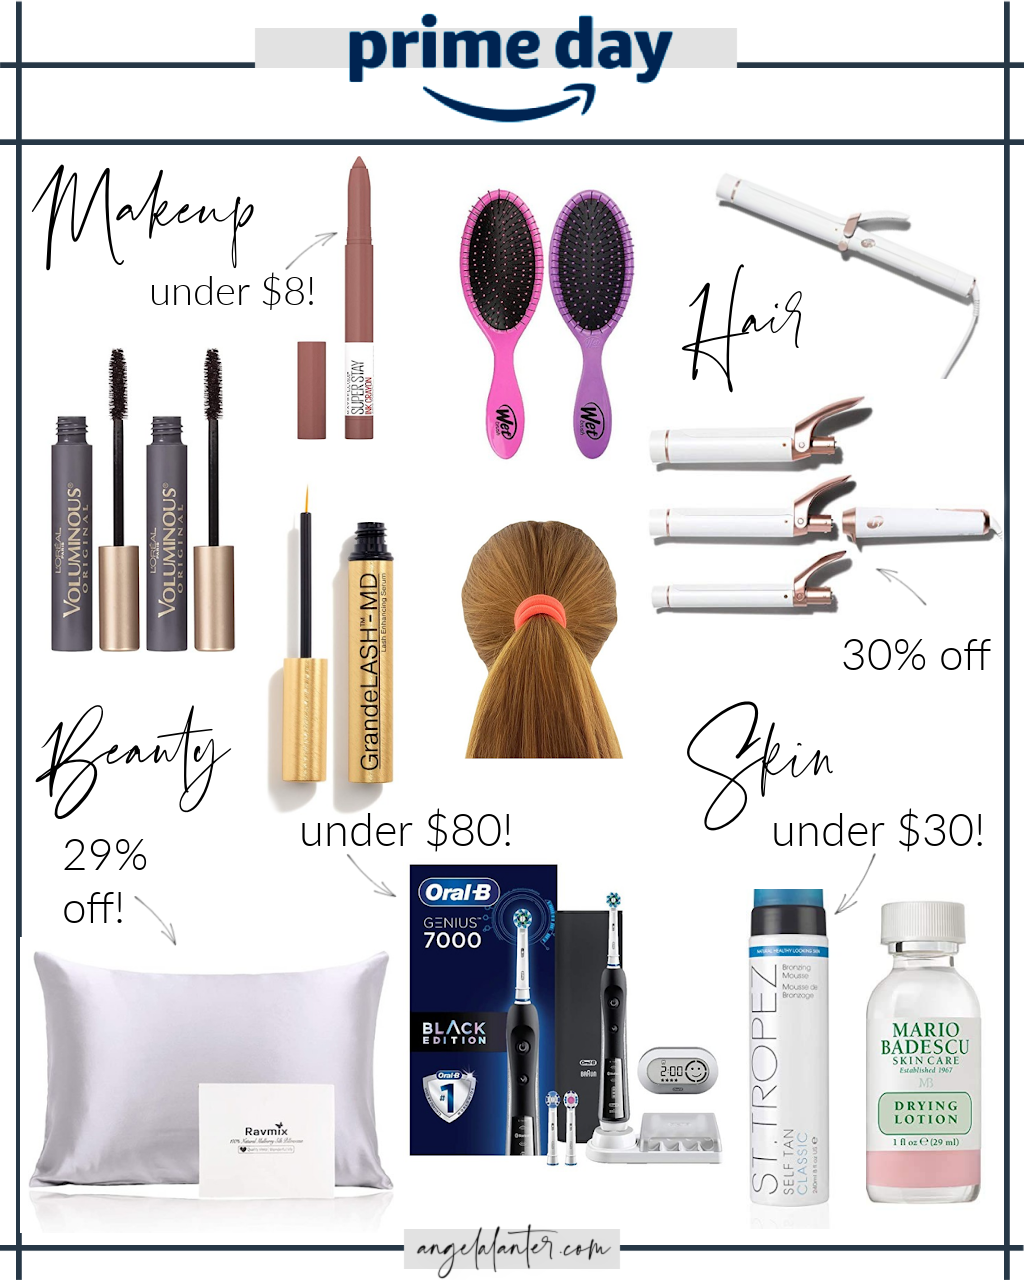 PRIME DAY BEST BEAUTY DEALS